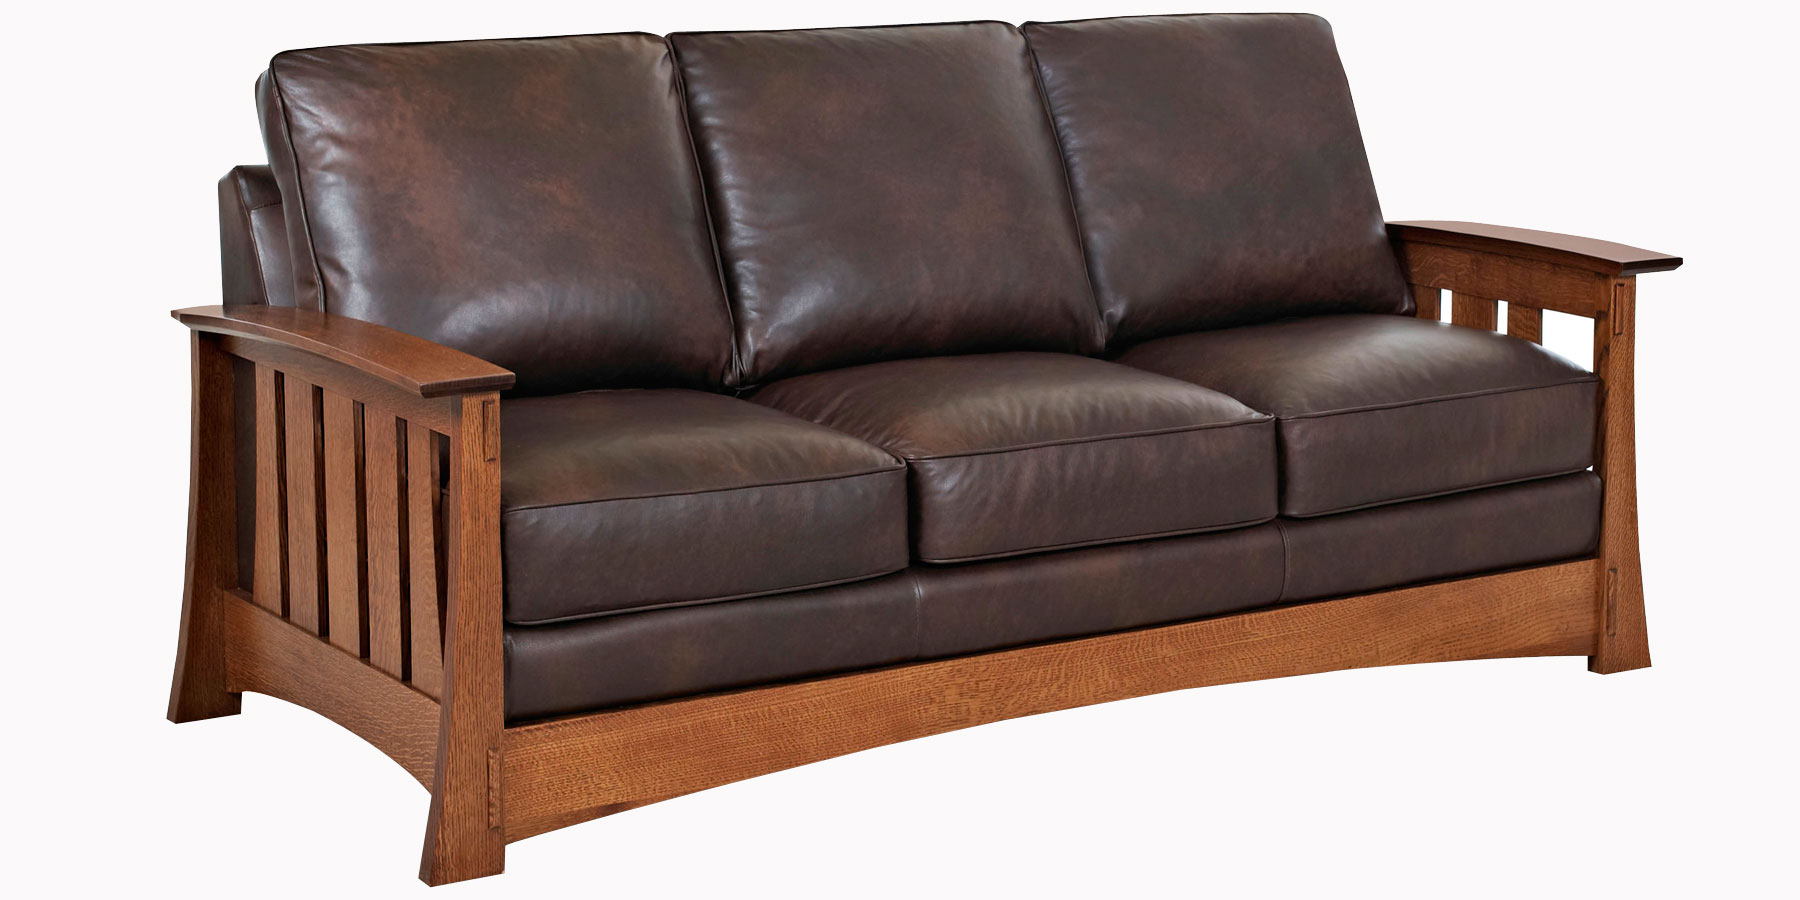 top leather furniture manufacturers. interesting top stockton mission style group for top leather furniture manufacturers a